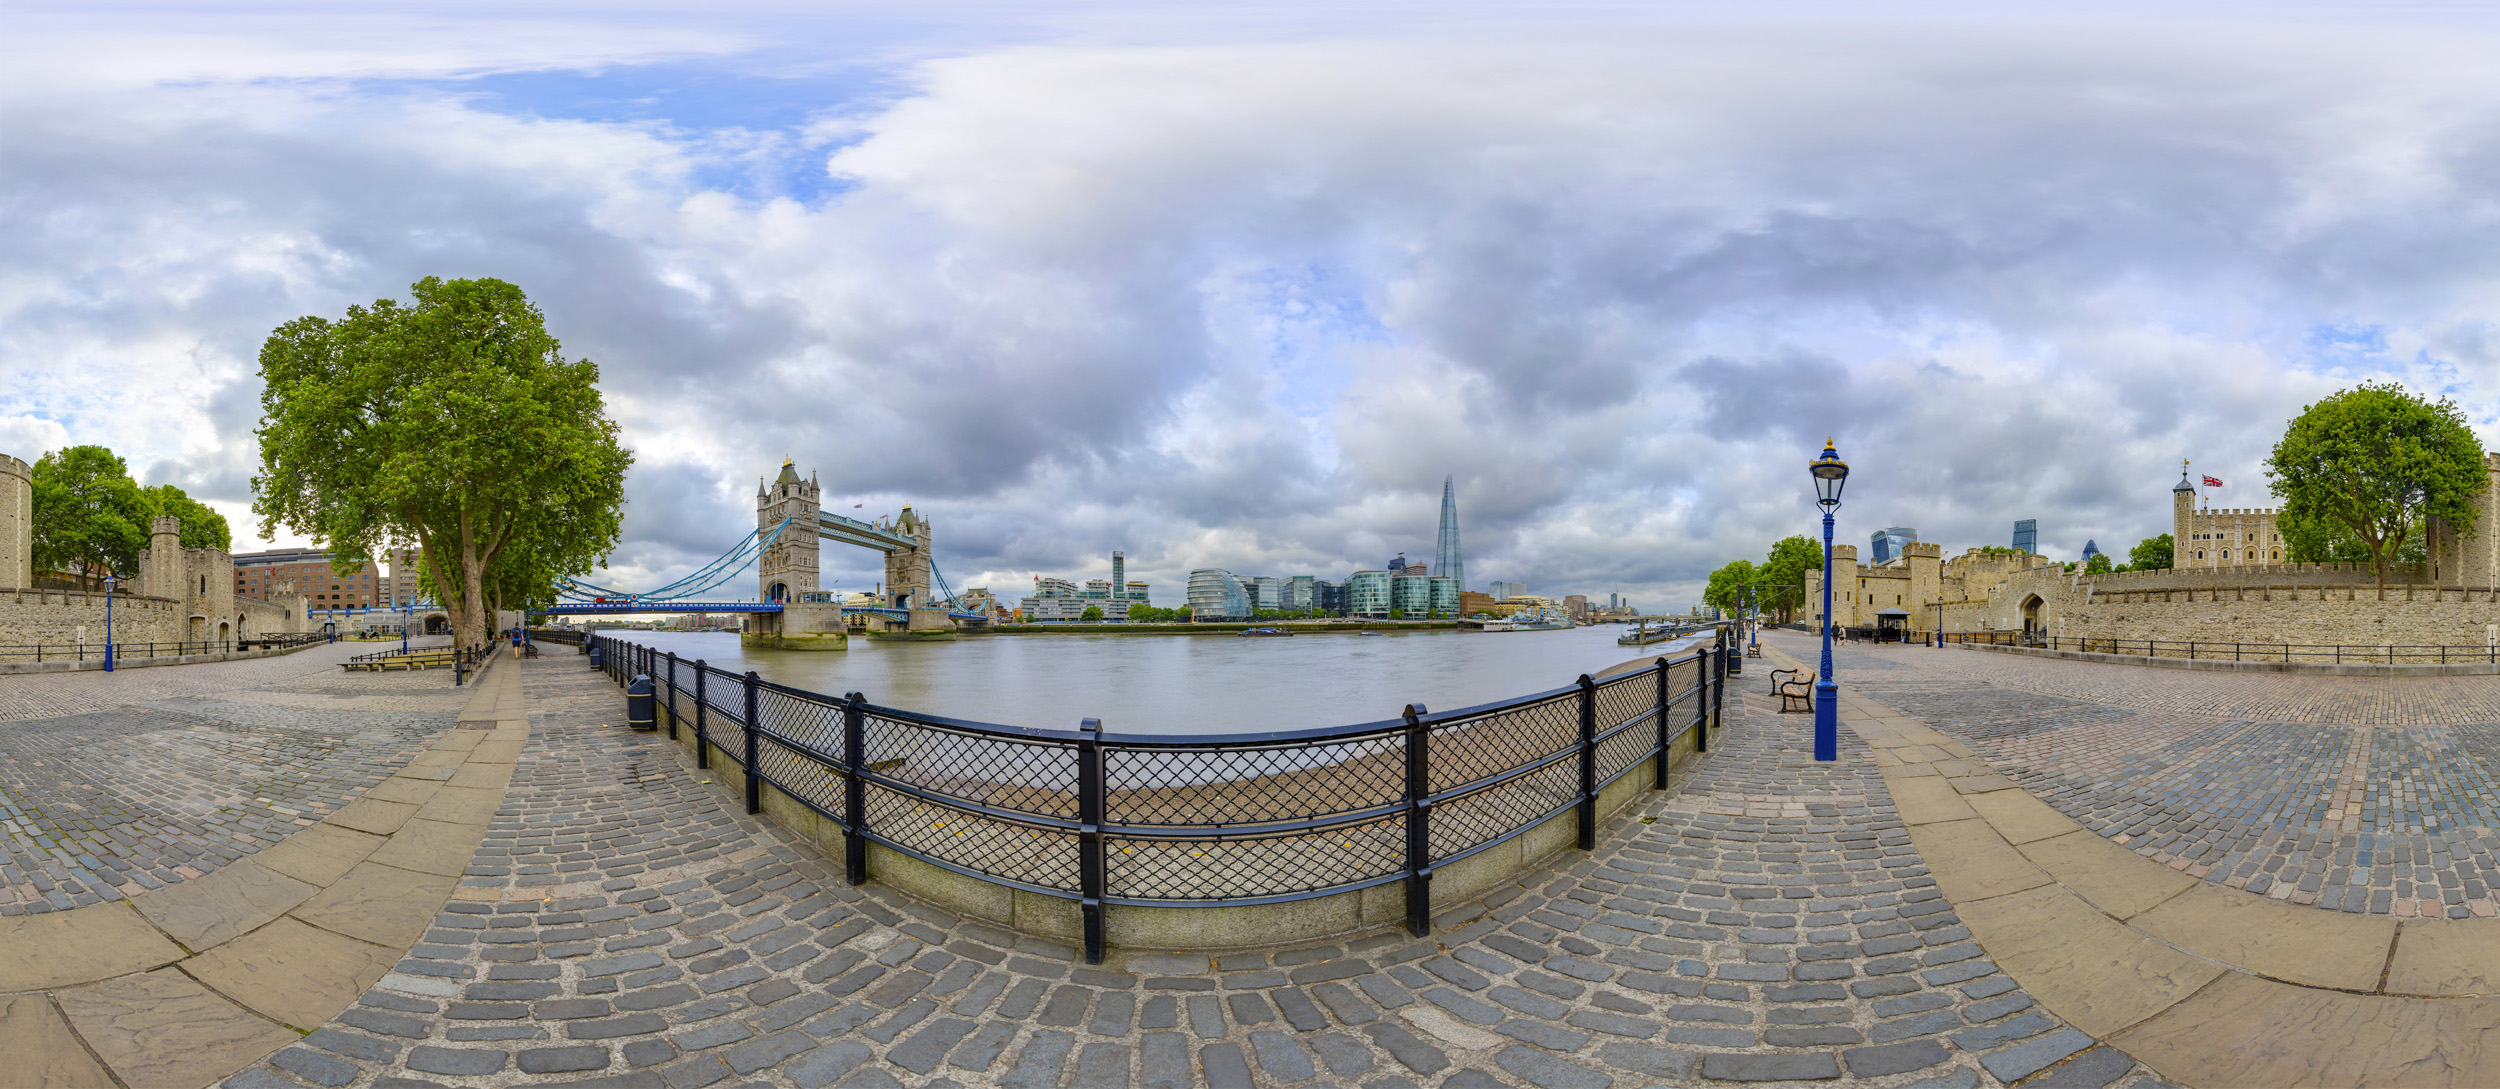 Tower of London. Janie Fitzgerald 360 VR photographer.